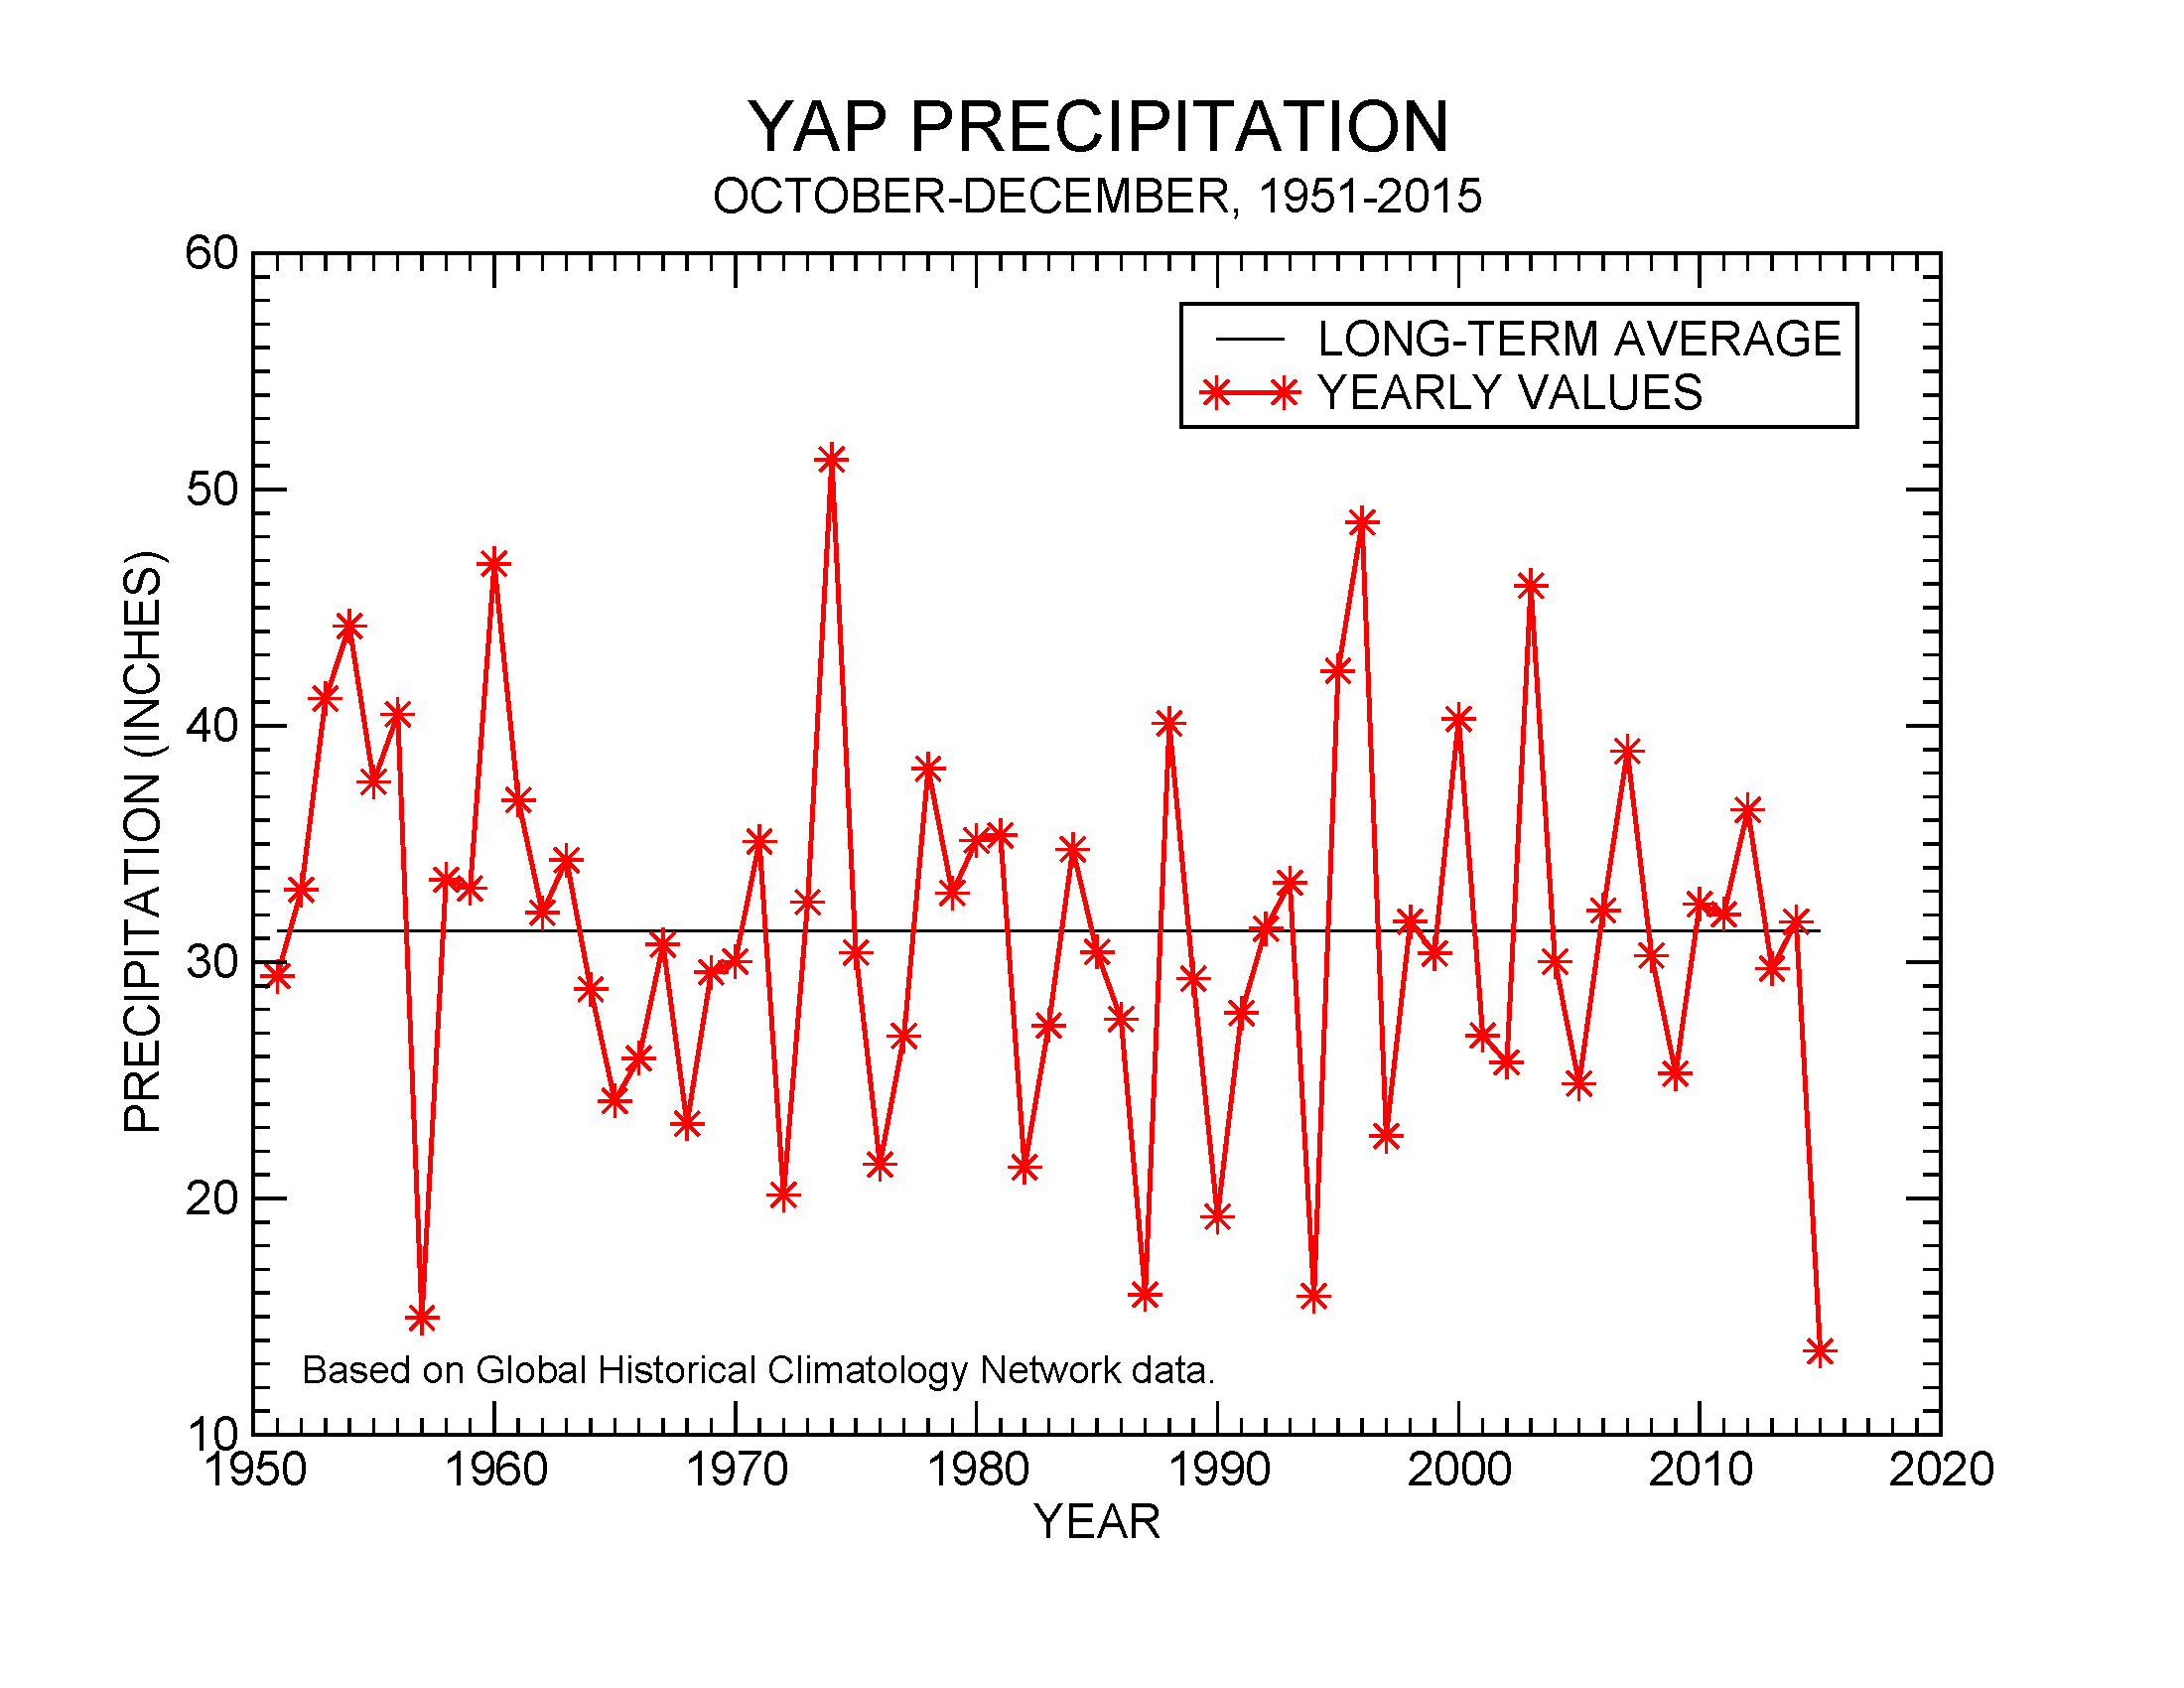 Precipitation at Yap, October-December, 1951-2015